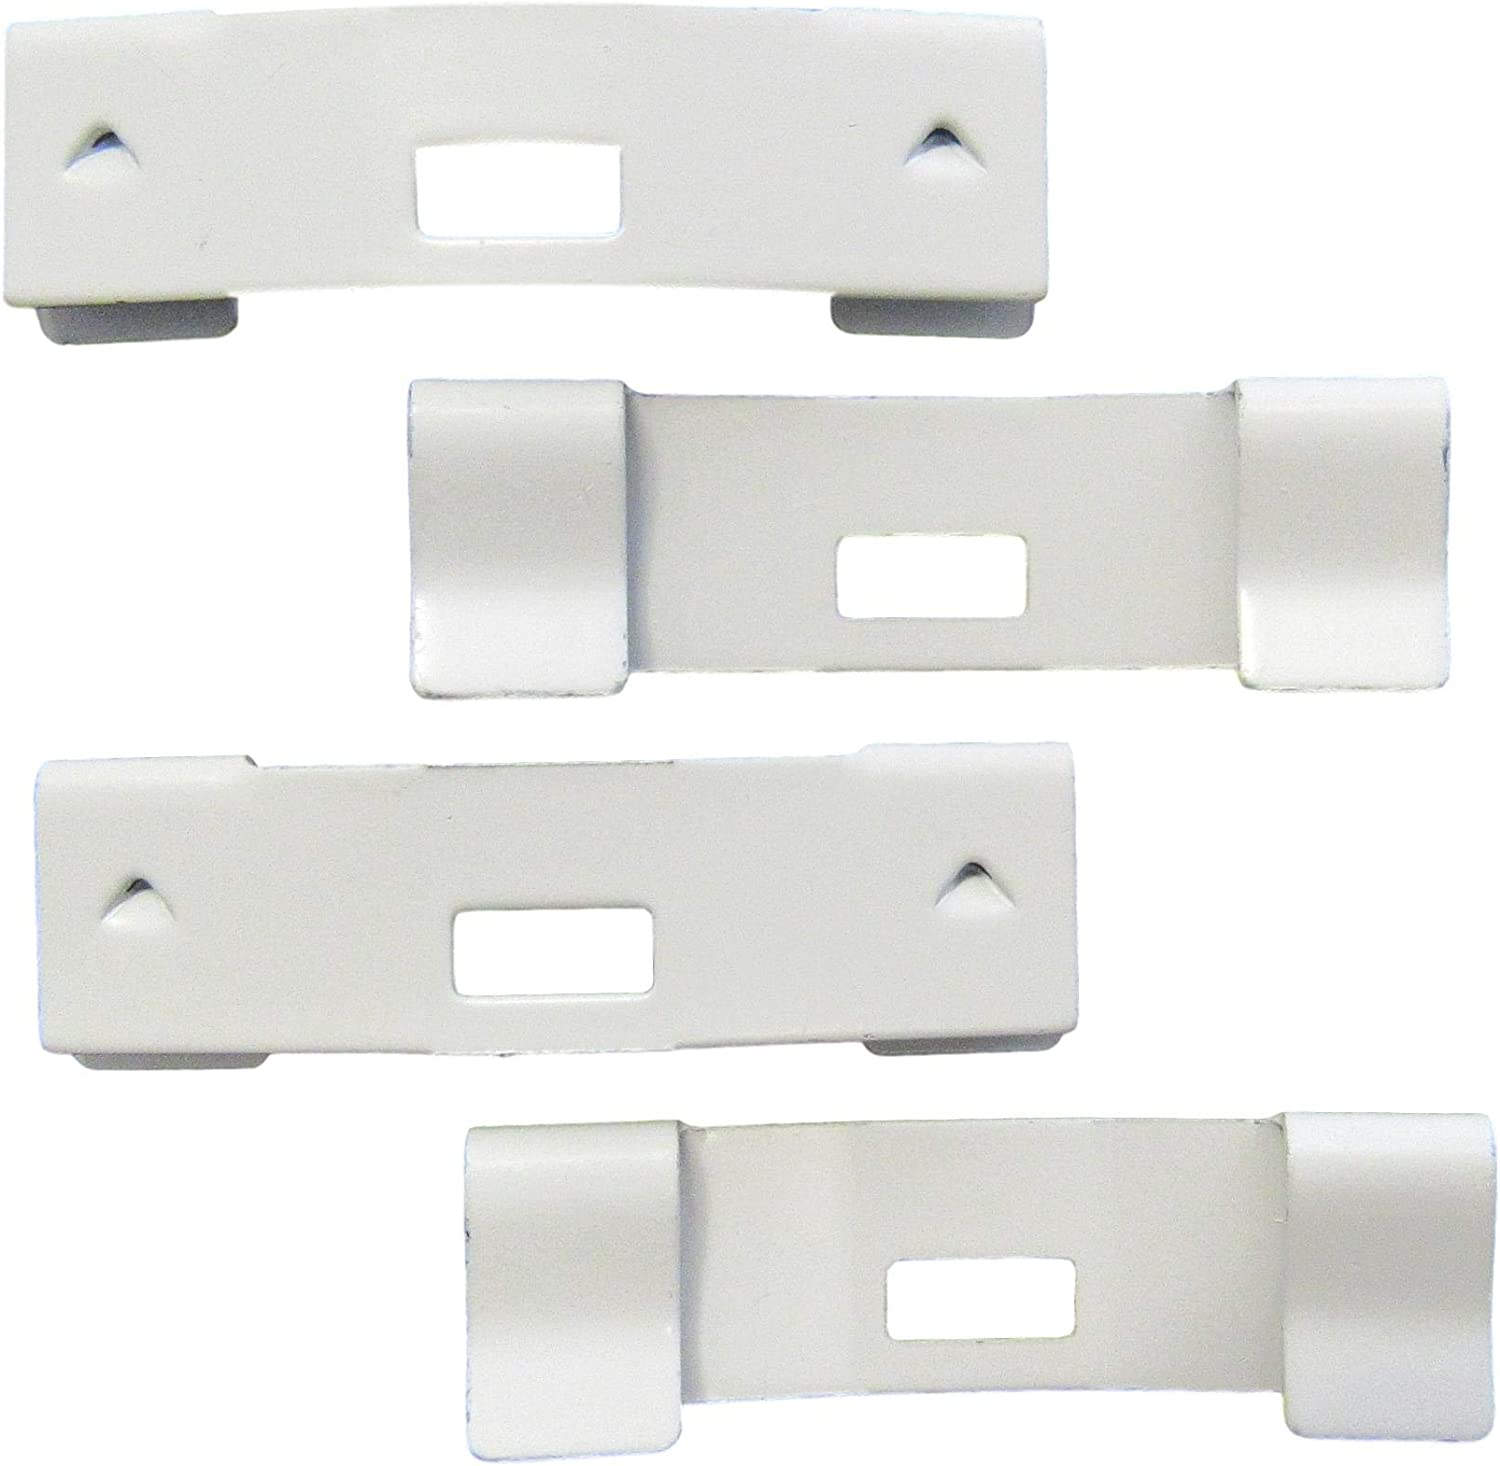 100 Pack Vertical Blind Finally Gorgeous popular brand Vane Saver Repair CURVED Clips White ~